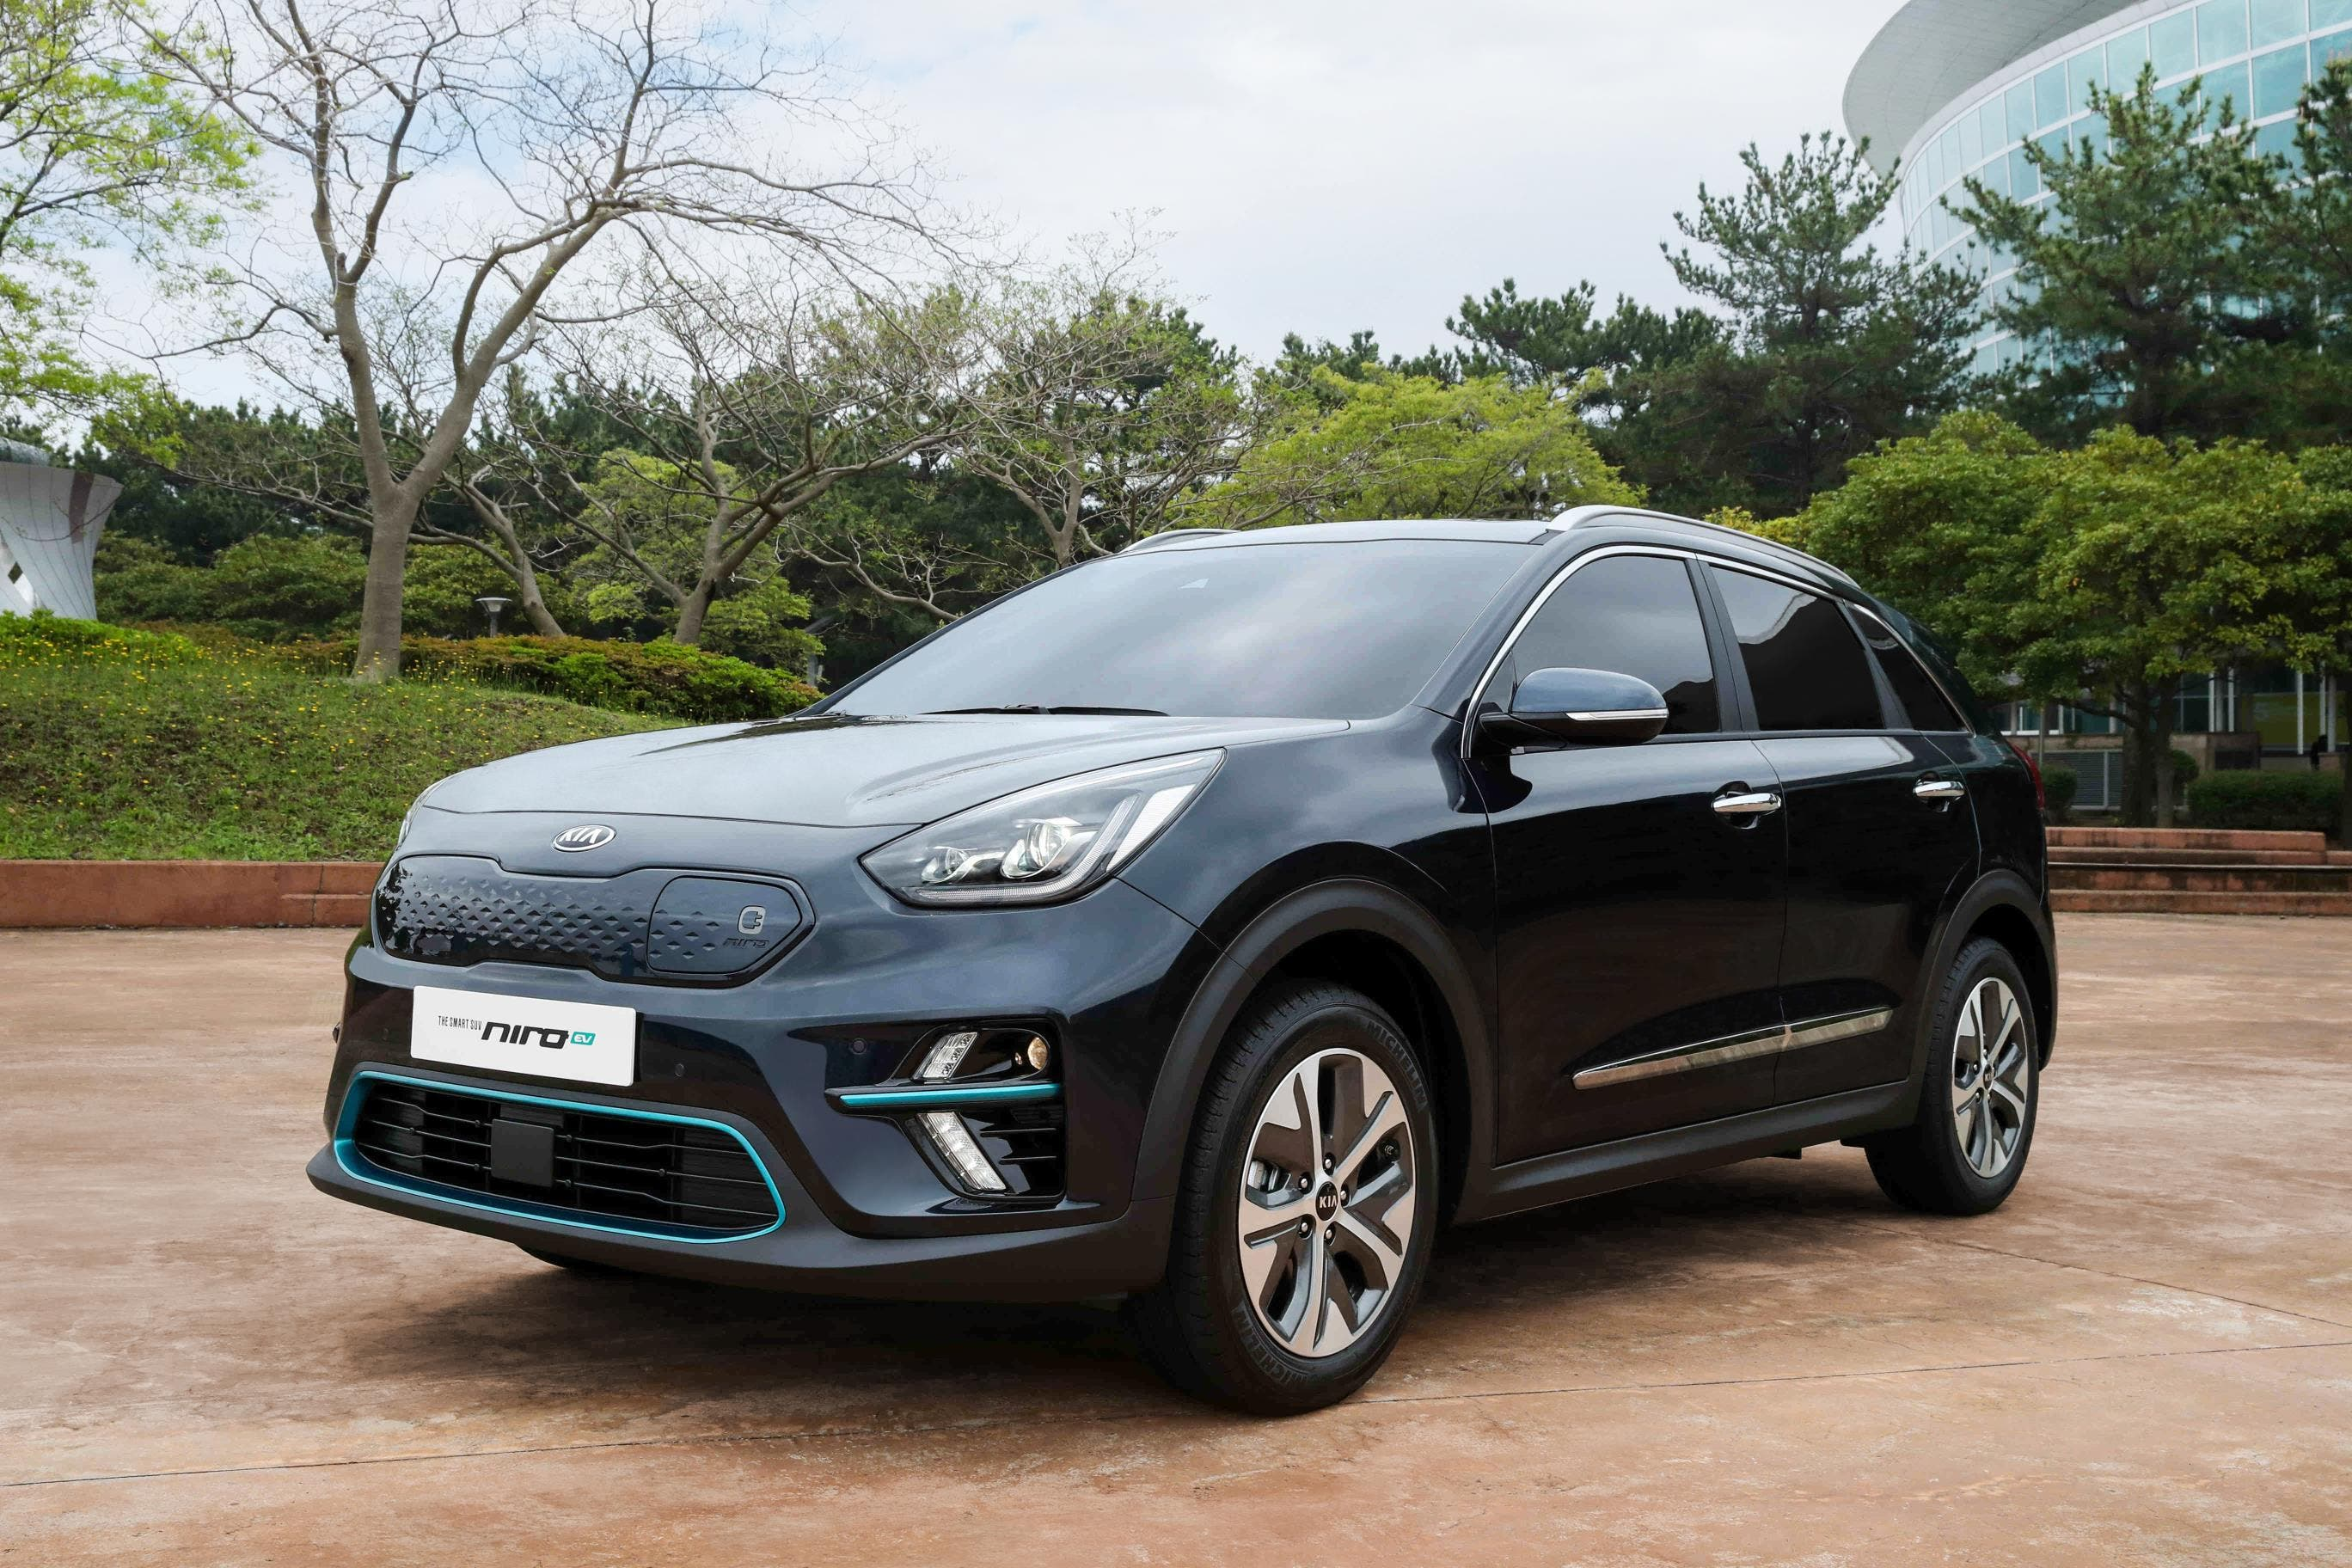 kia niro electric now on sale in korea features choice of battery size cleantechnica. Black Bedroom Furniture Sets. Home Design Ideas